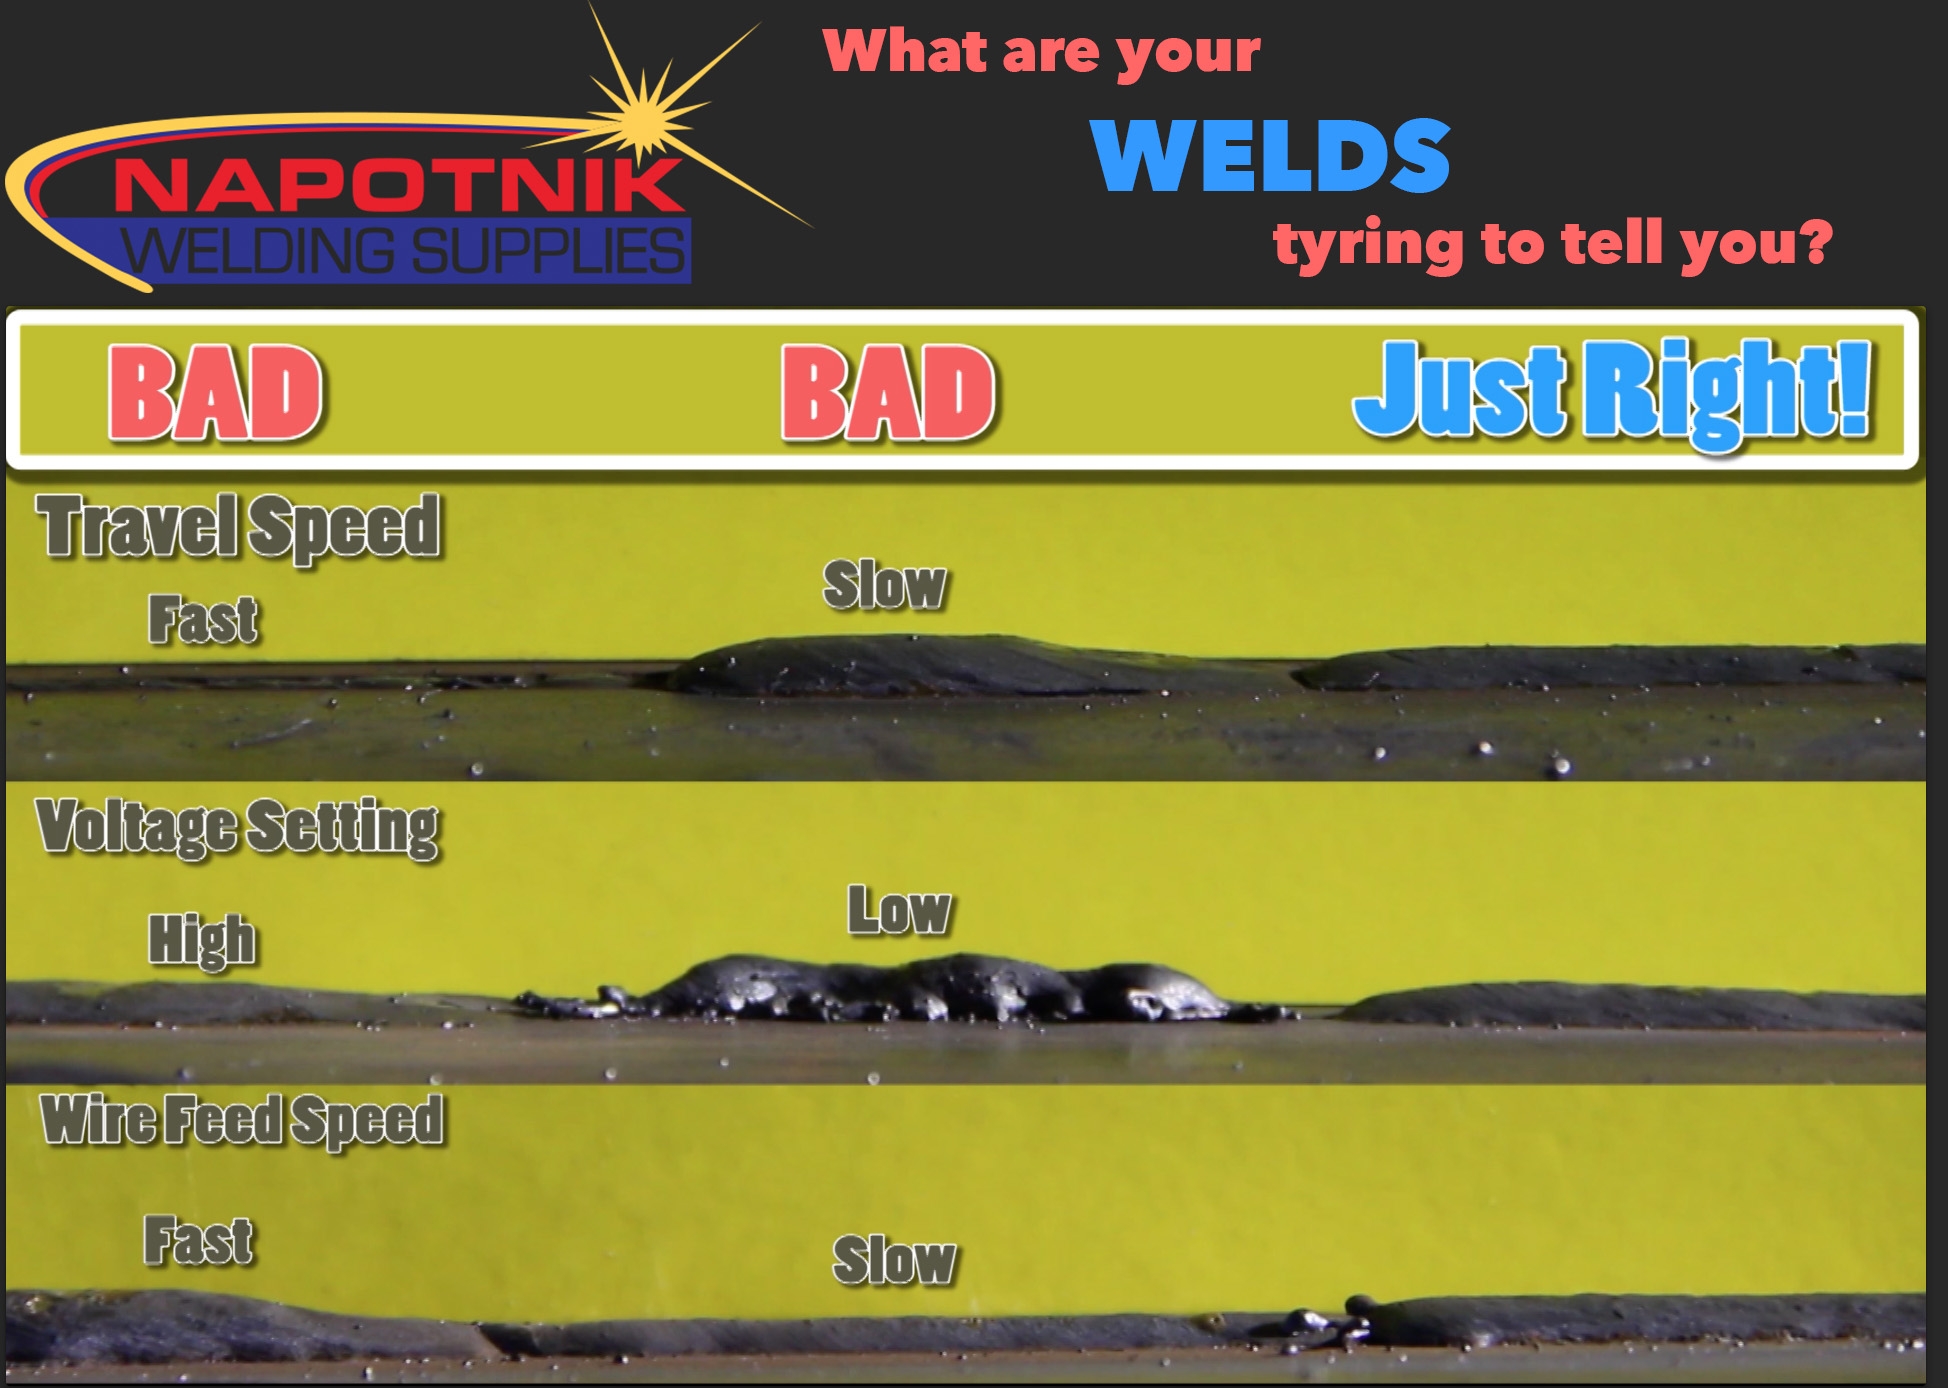 examples of welds with to high or low amperage, high or low wire feed speed, or fast or slow travel speed